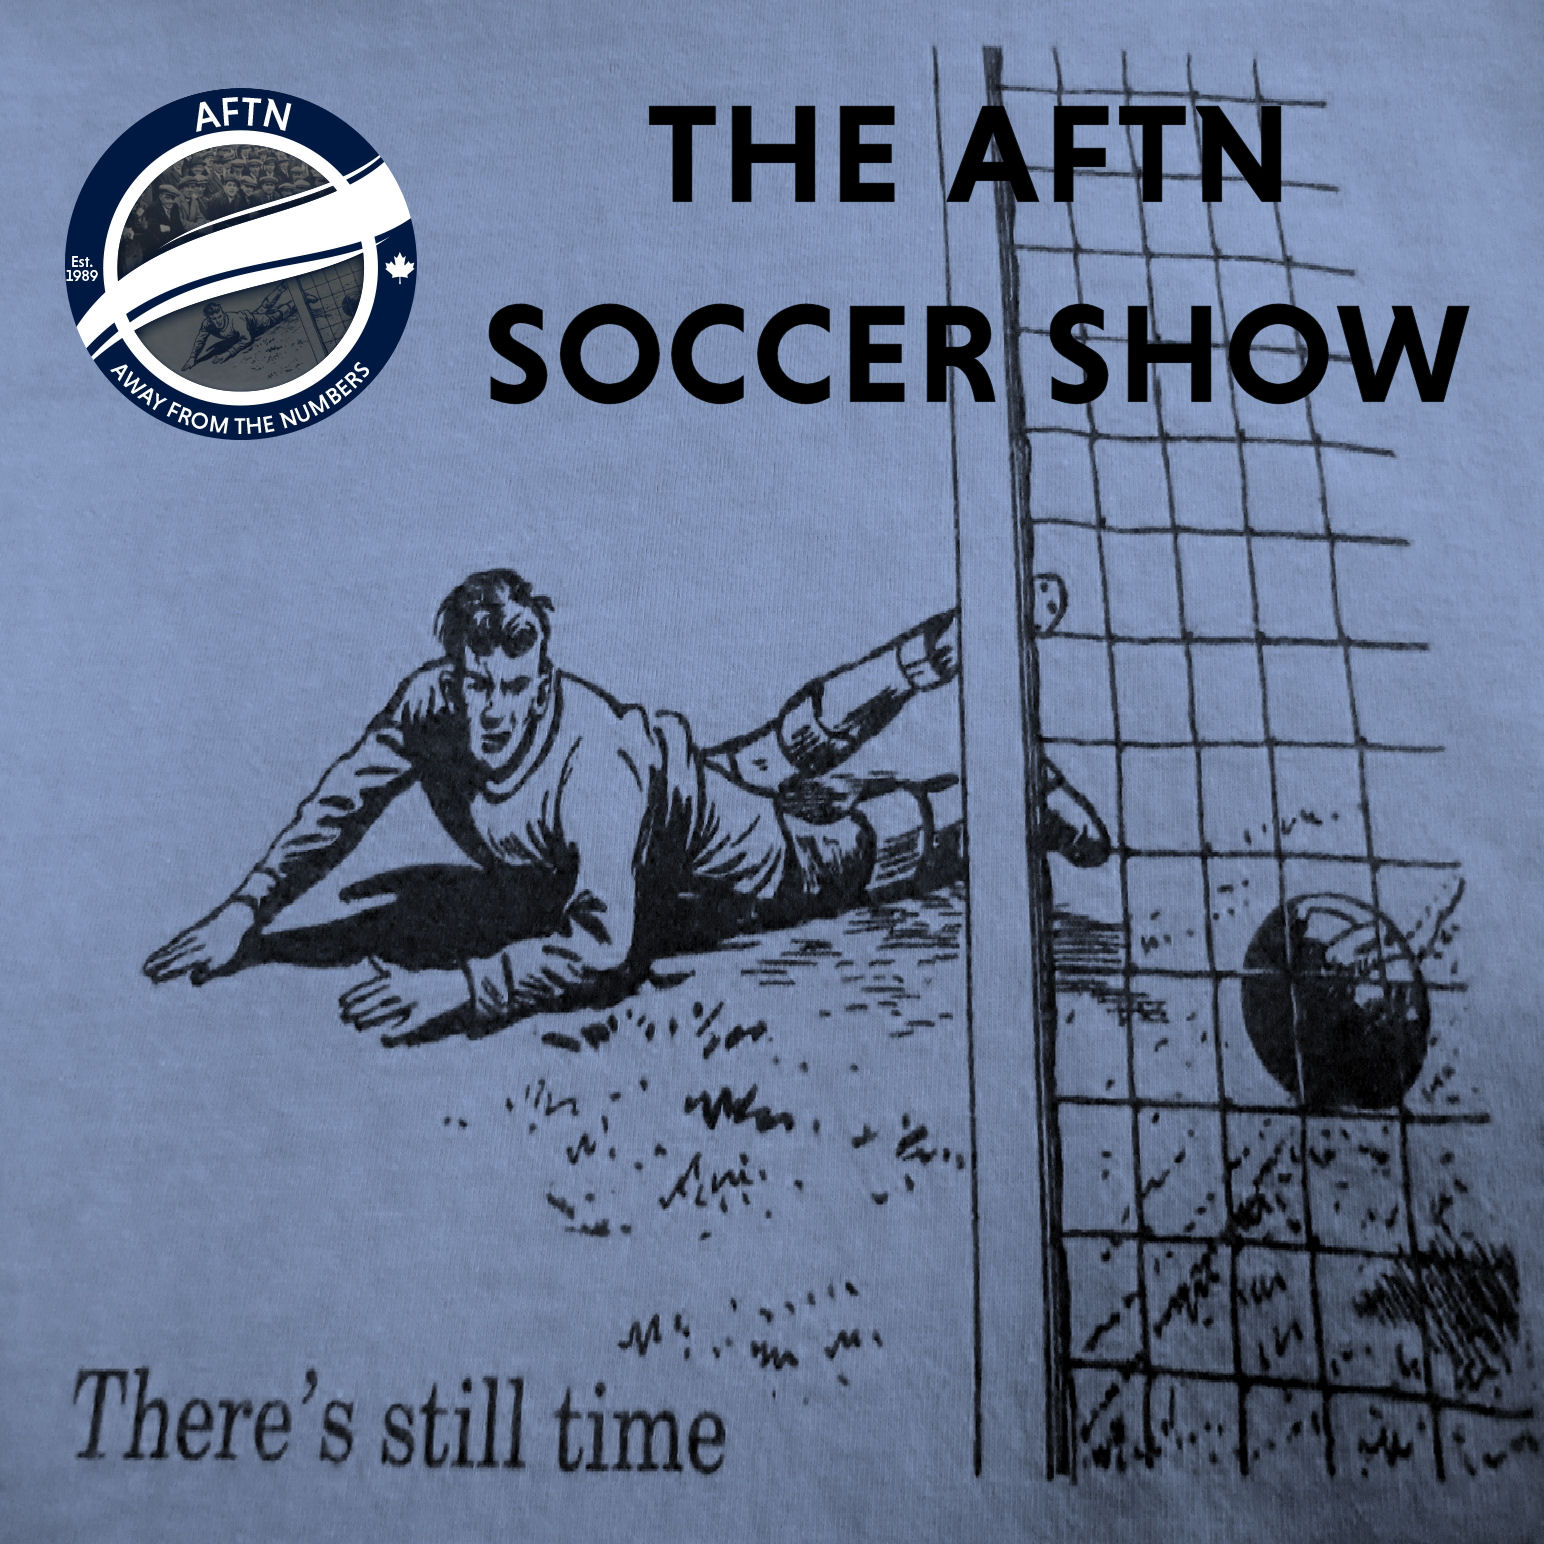 AFTN Soccer Show (Vancouver Whitecaps/MLS)